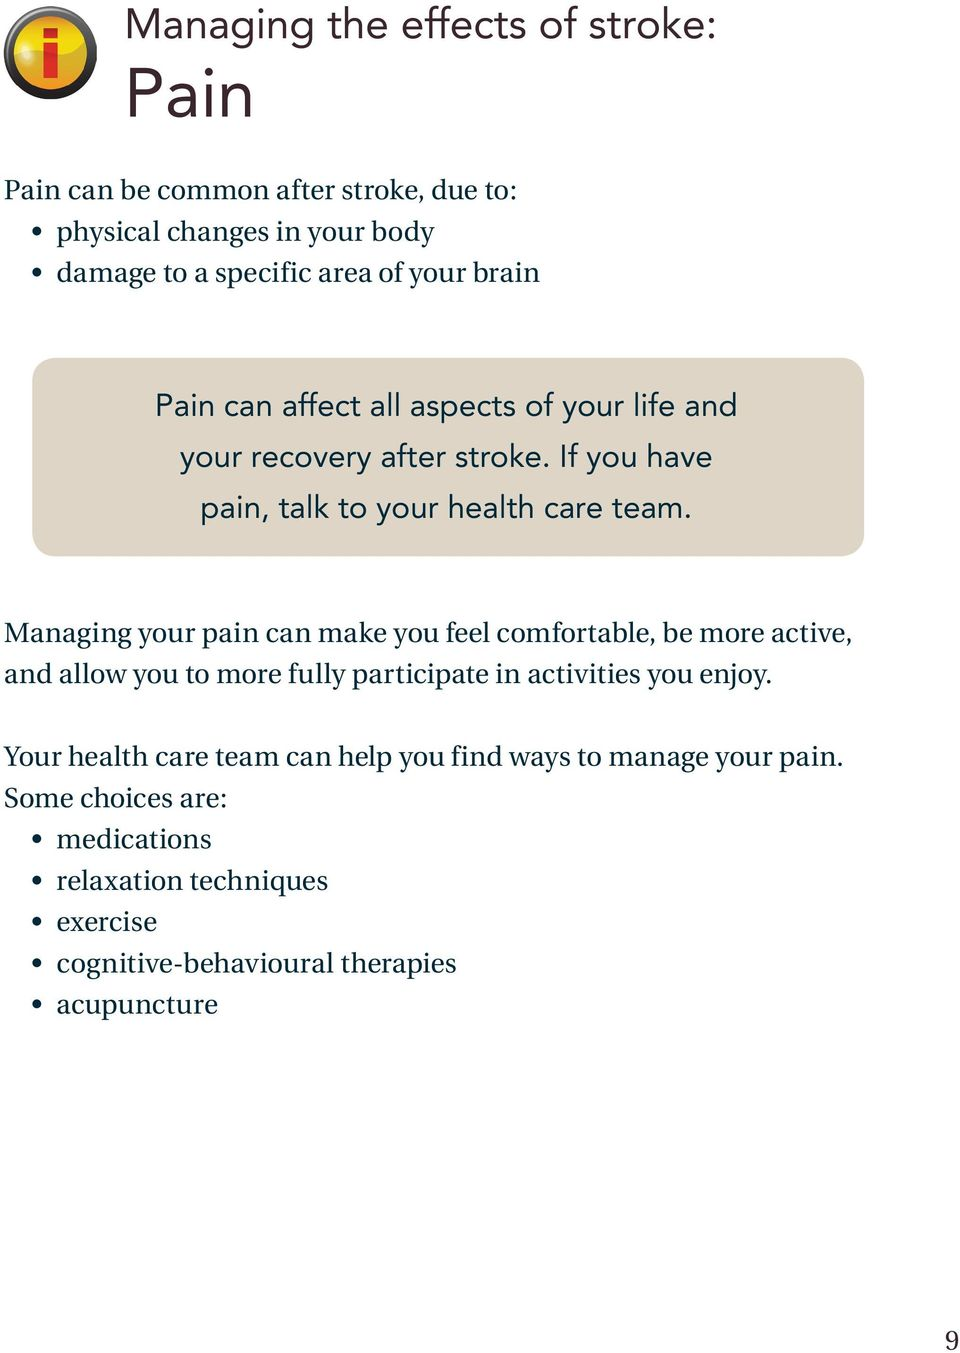 Managing your pain can make you feel comfortable, be more active, and allow you to more fully participate in activities you enjoy.